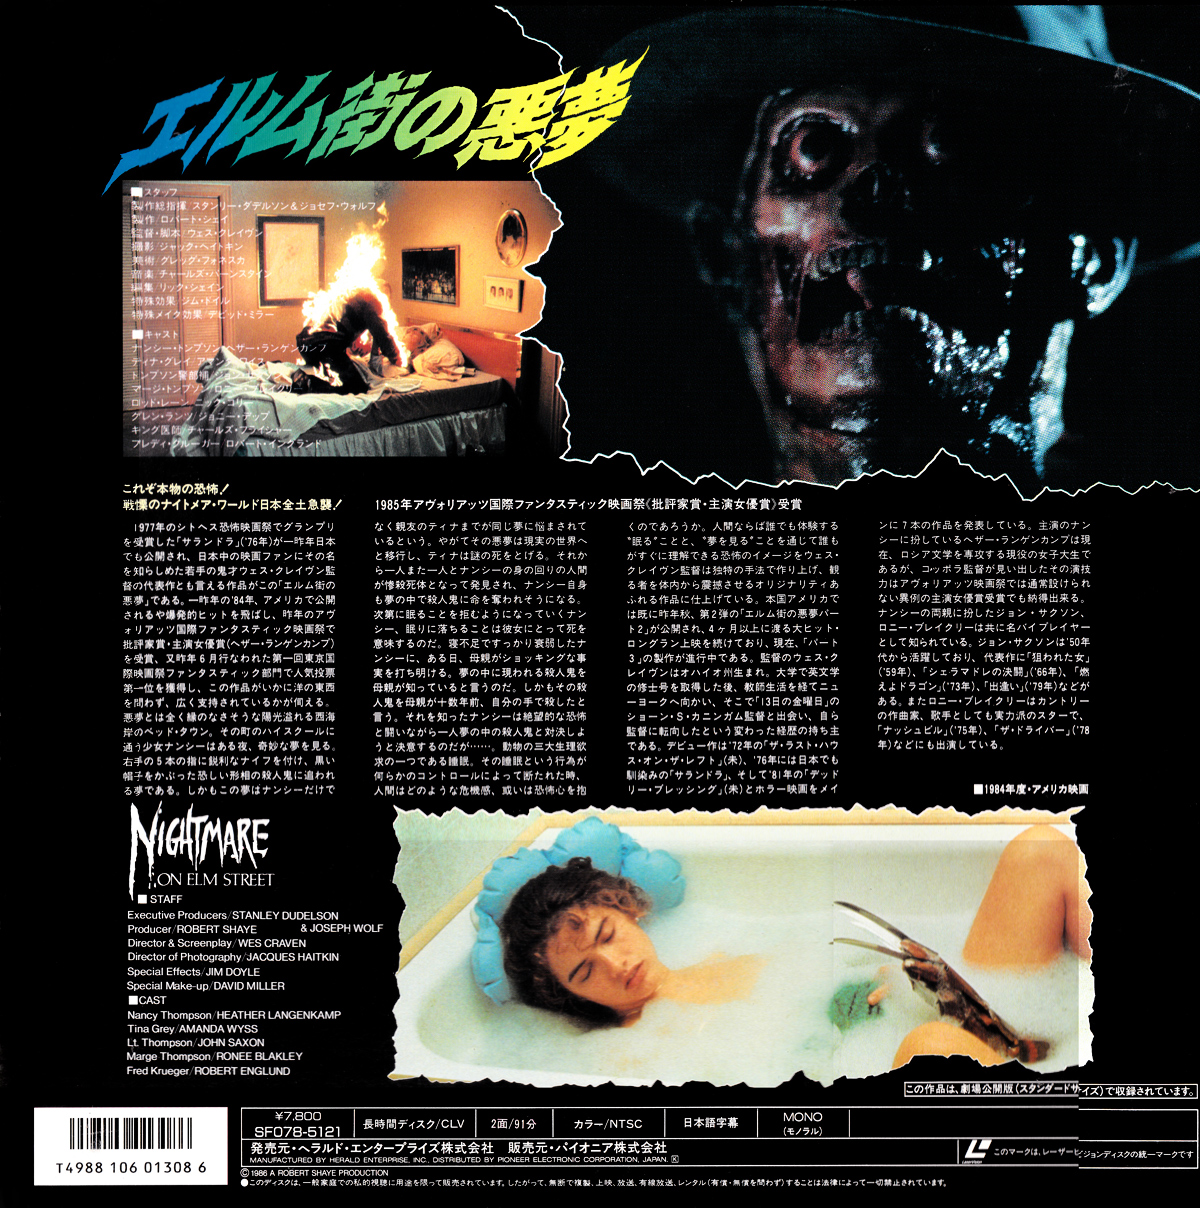 A Nightmare on Elm Street Laserdisc (Japan)